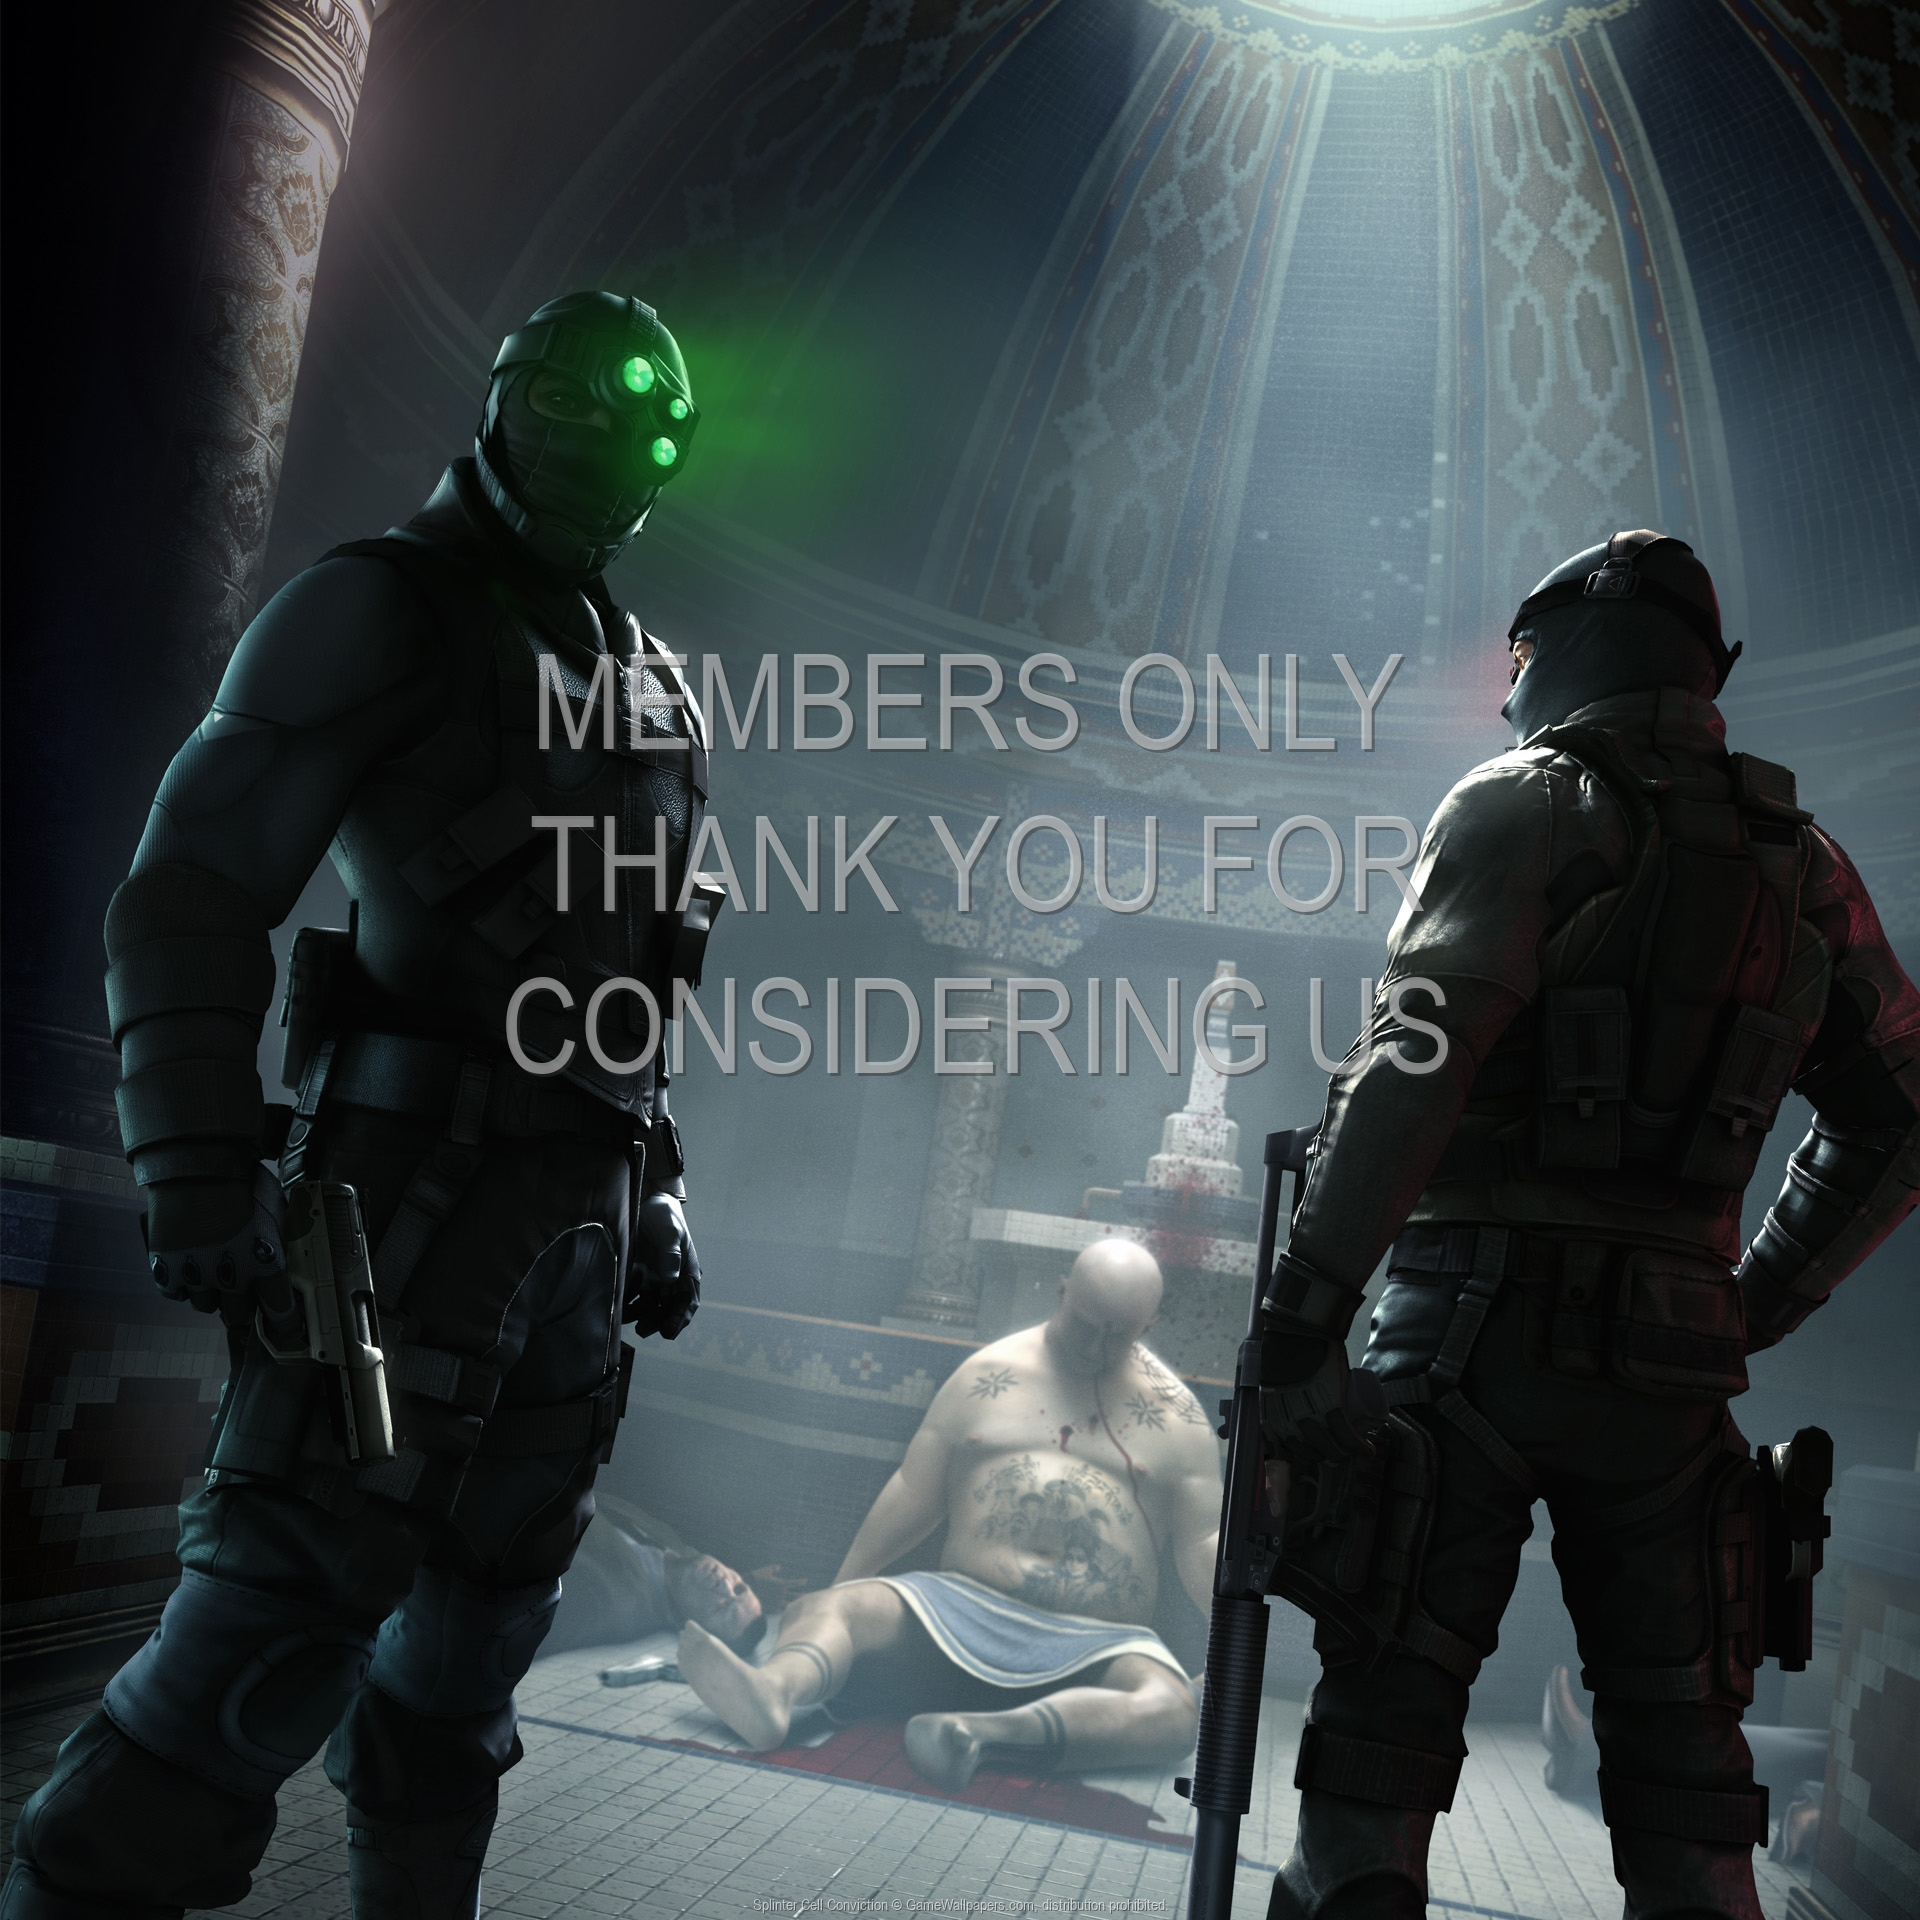 Splinter Cell Conviction 1920x1080 Mobile Wallpaper Or Background 07